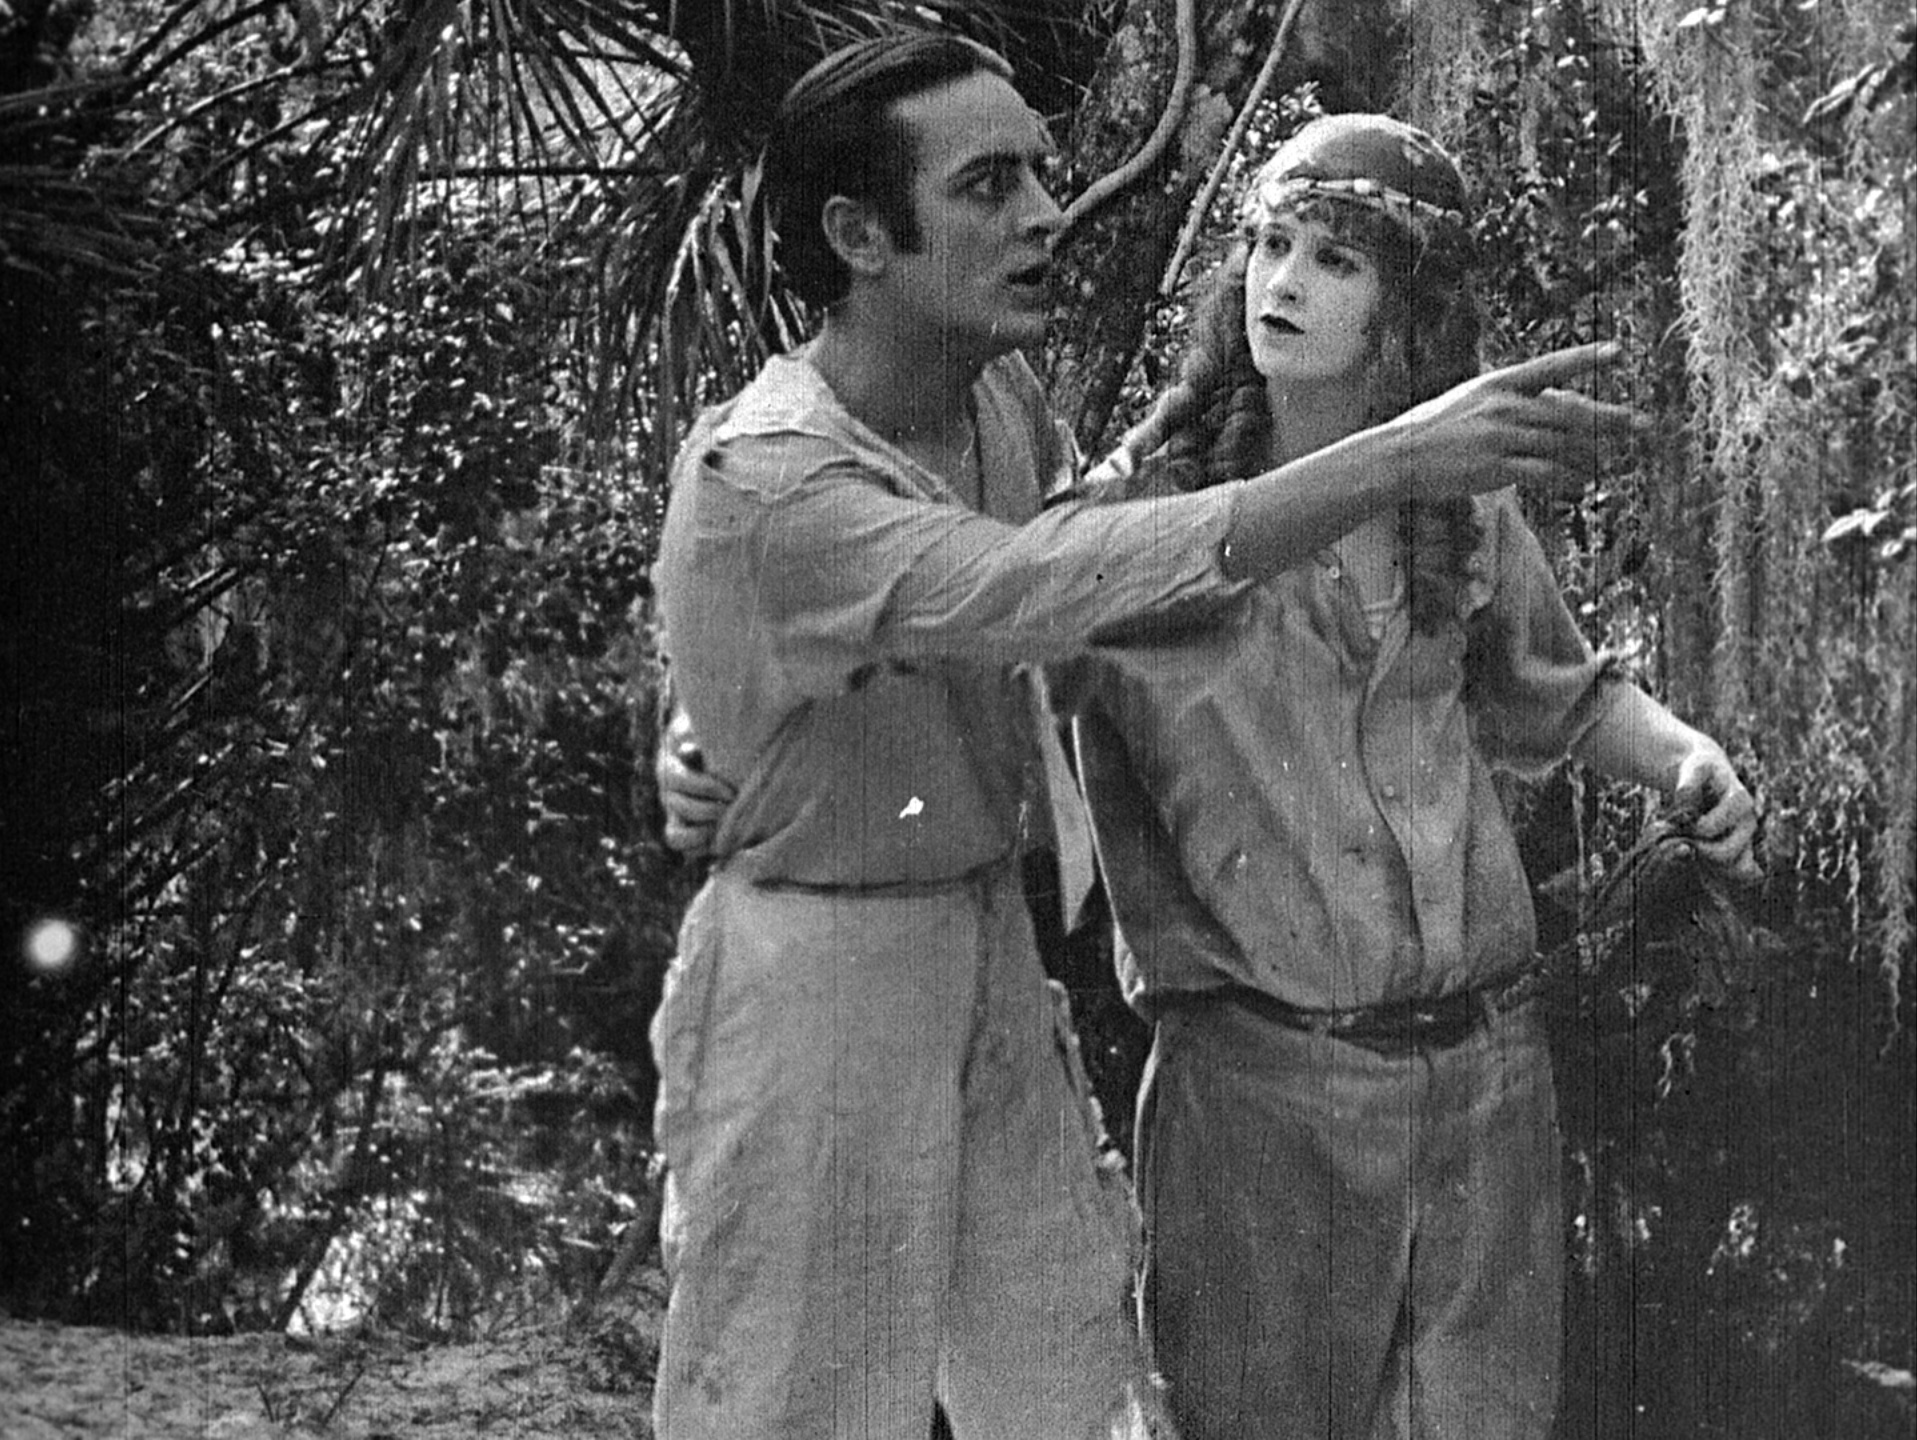 Bitter Fruit - Carlos and Polly, in the silent film Bitter Fruit (1920)